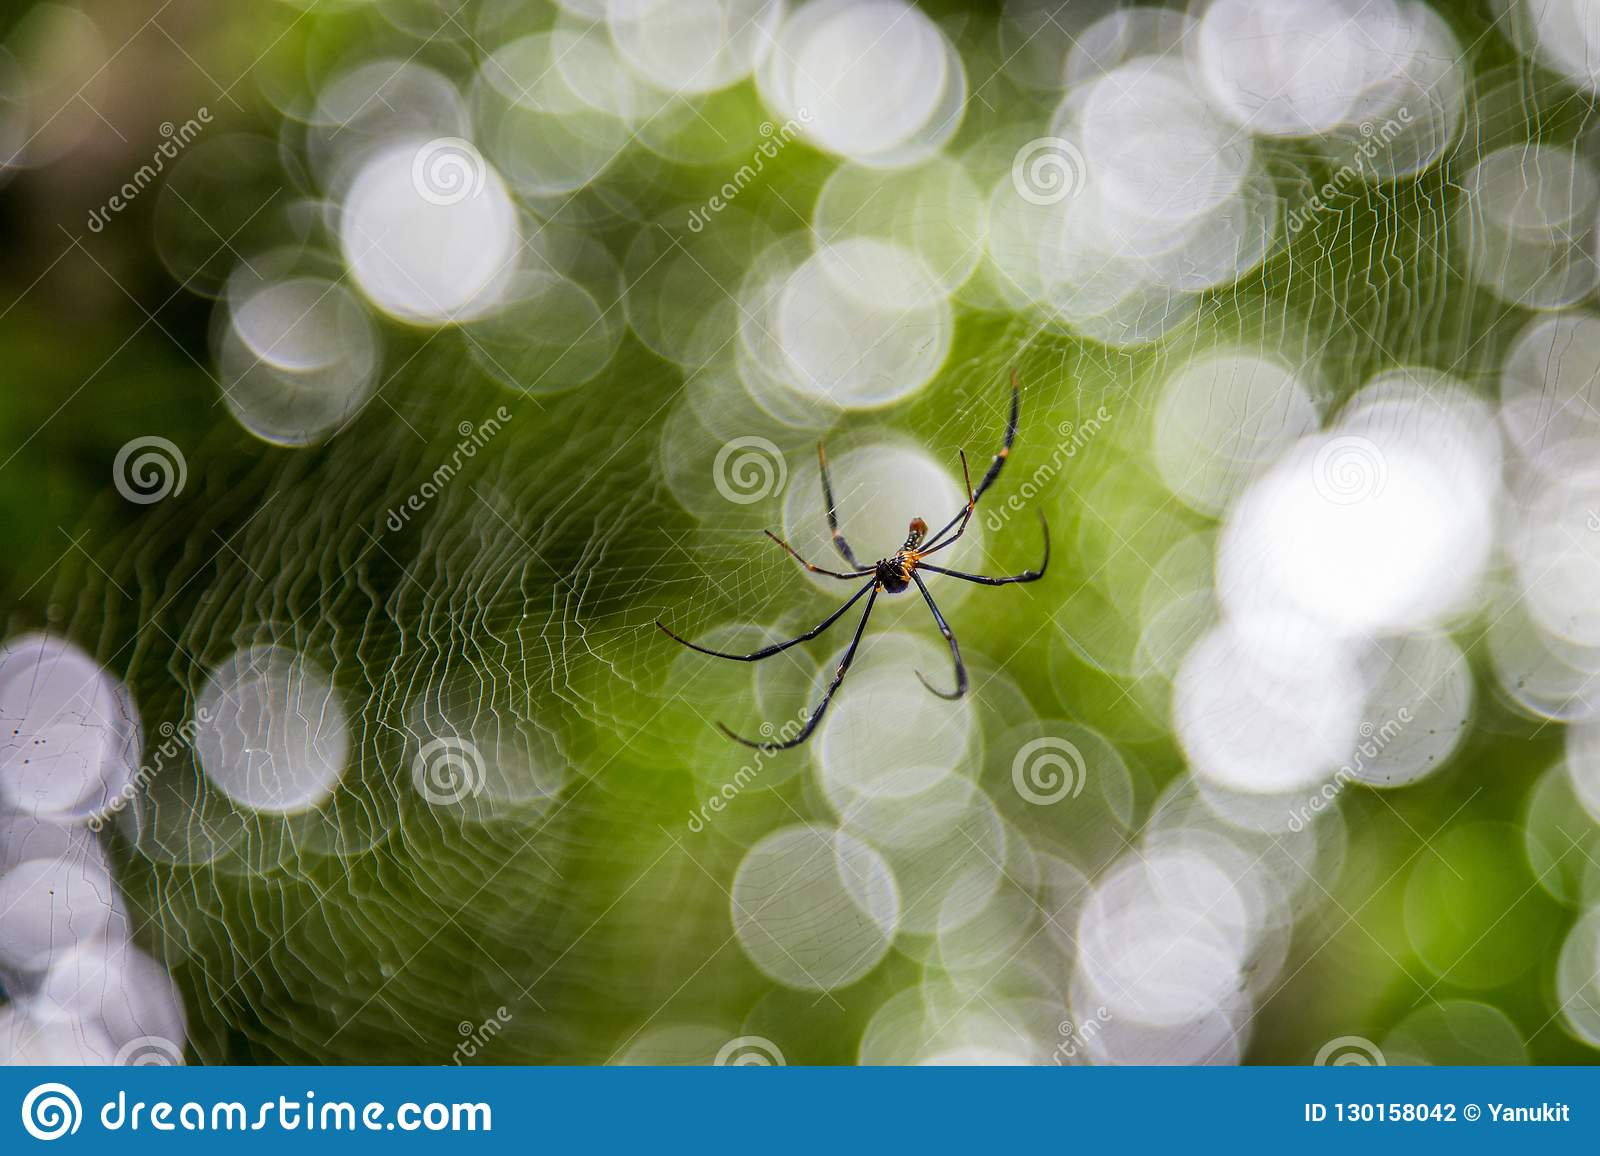 Spider on net with blur green bokeh background